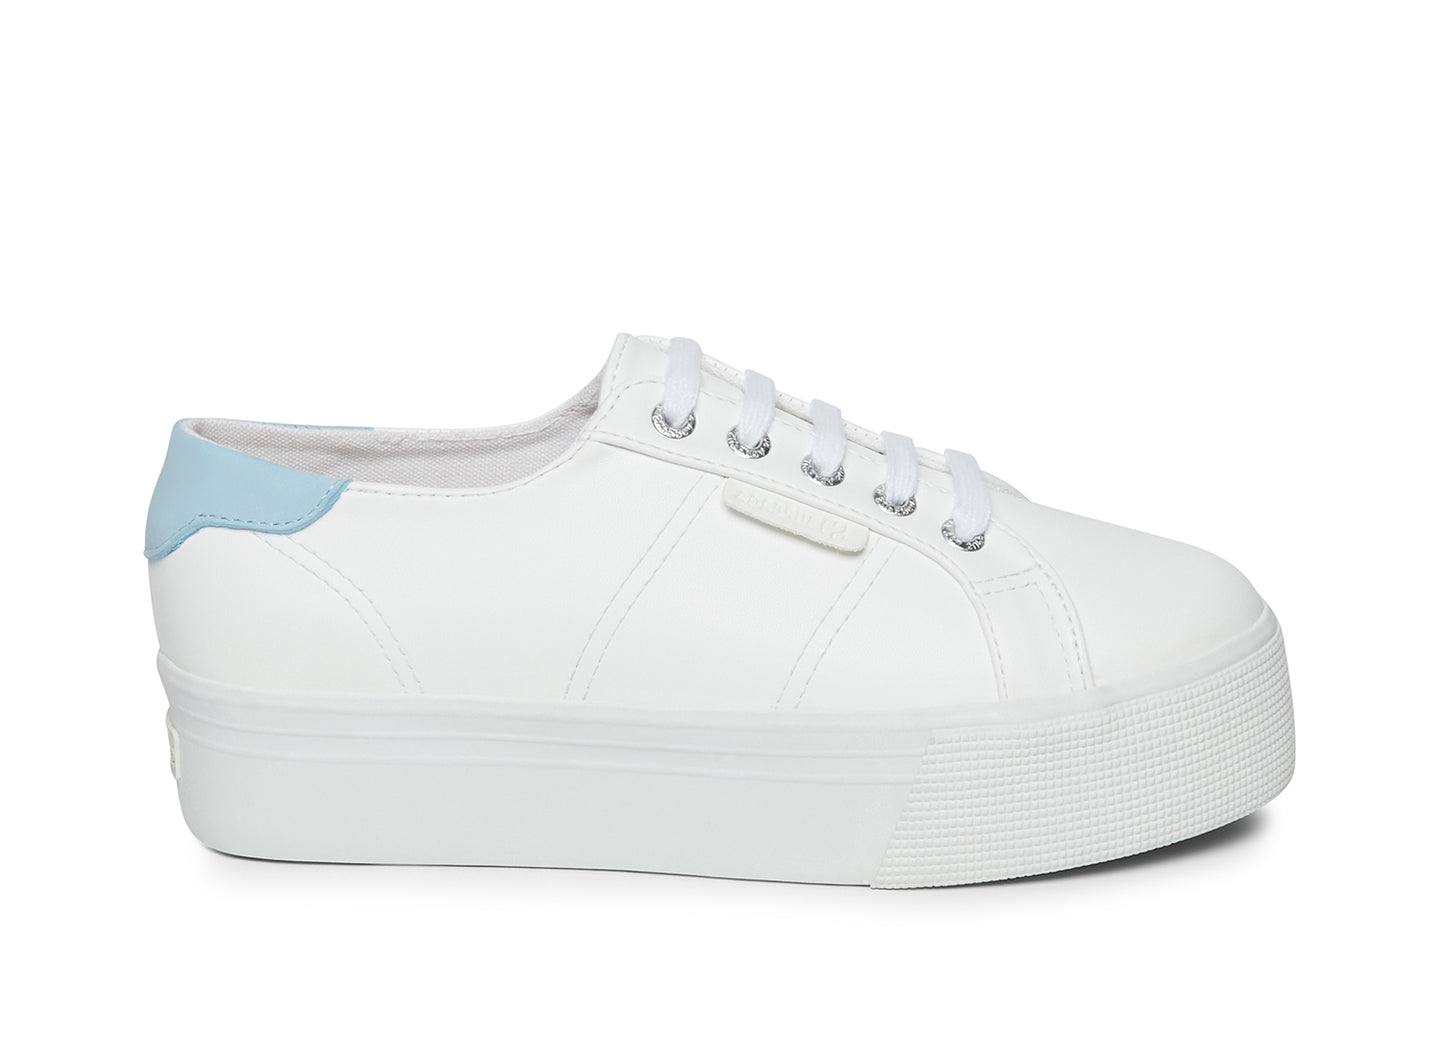 2790 SYNLEANAPPAW WHITE BABY BLUE - Women's